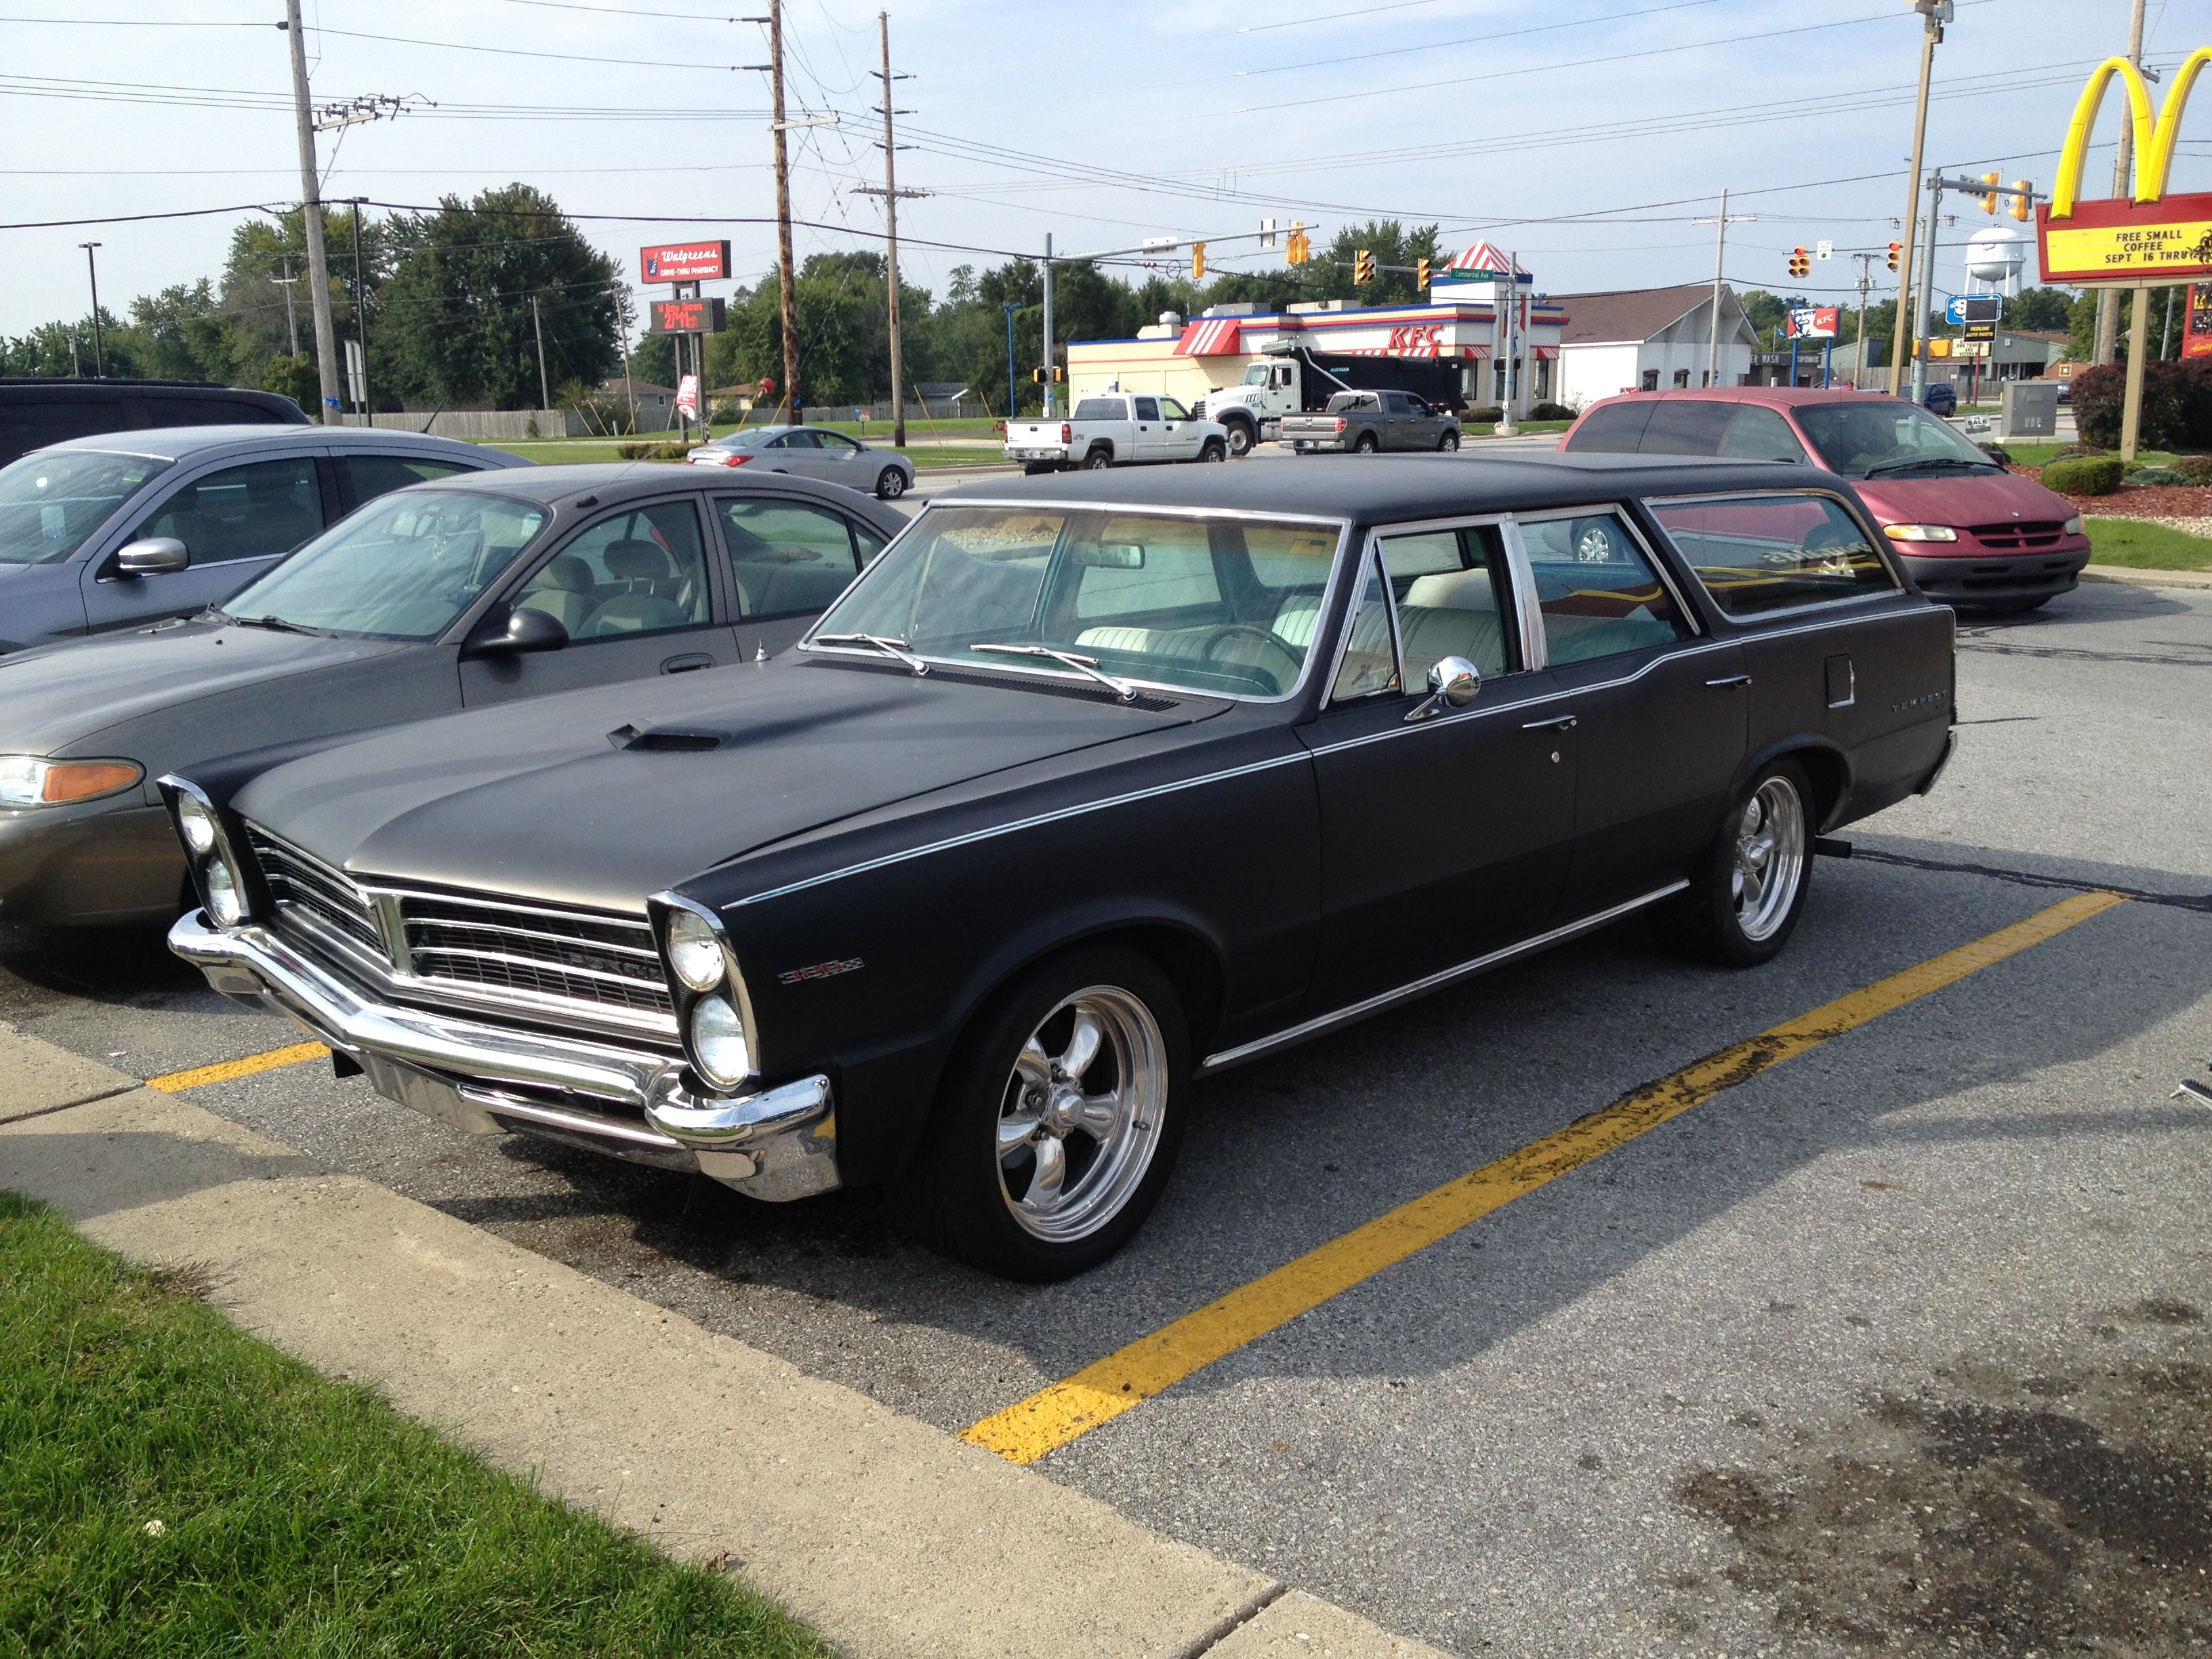 1965 pontiac tempest is scruffy on the outside but featured a rebuilt 400 v8 with aluminum edelbrock heads and backed by a richmond 5 speed manual